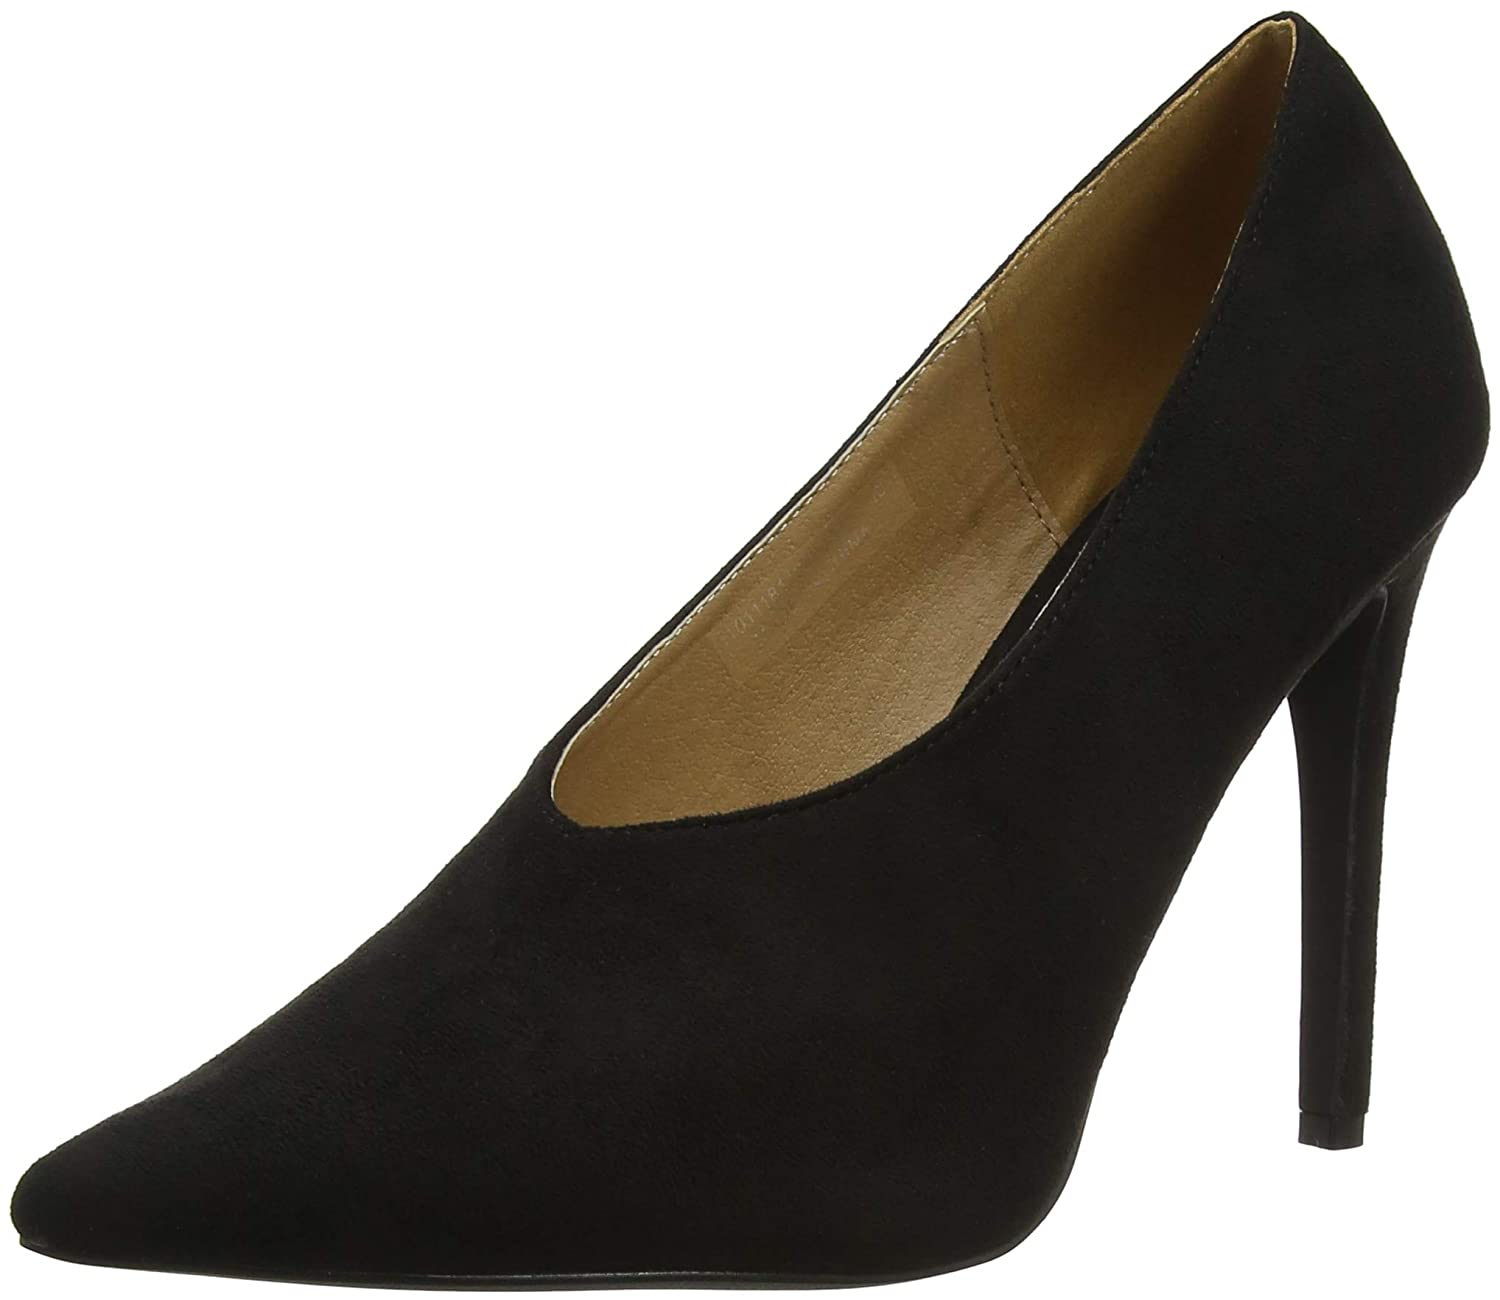 85eb6bcd4083 Lost Ink Women s s Tate High Vamp Basic Court Closed Toe Heels   Amazon.co.uk  Shoes   Bags